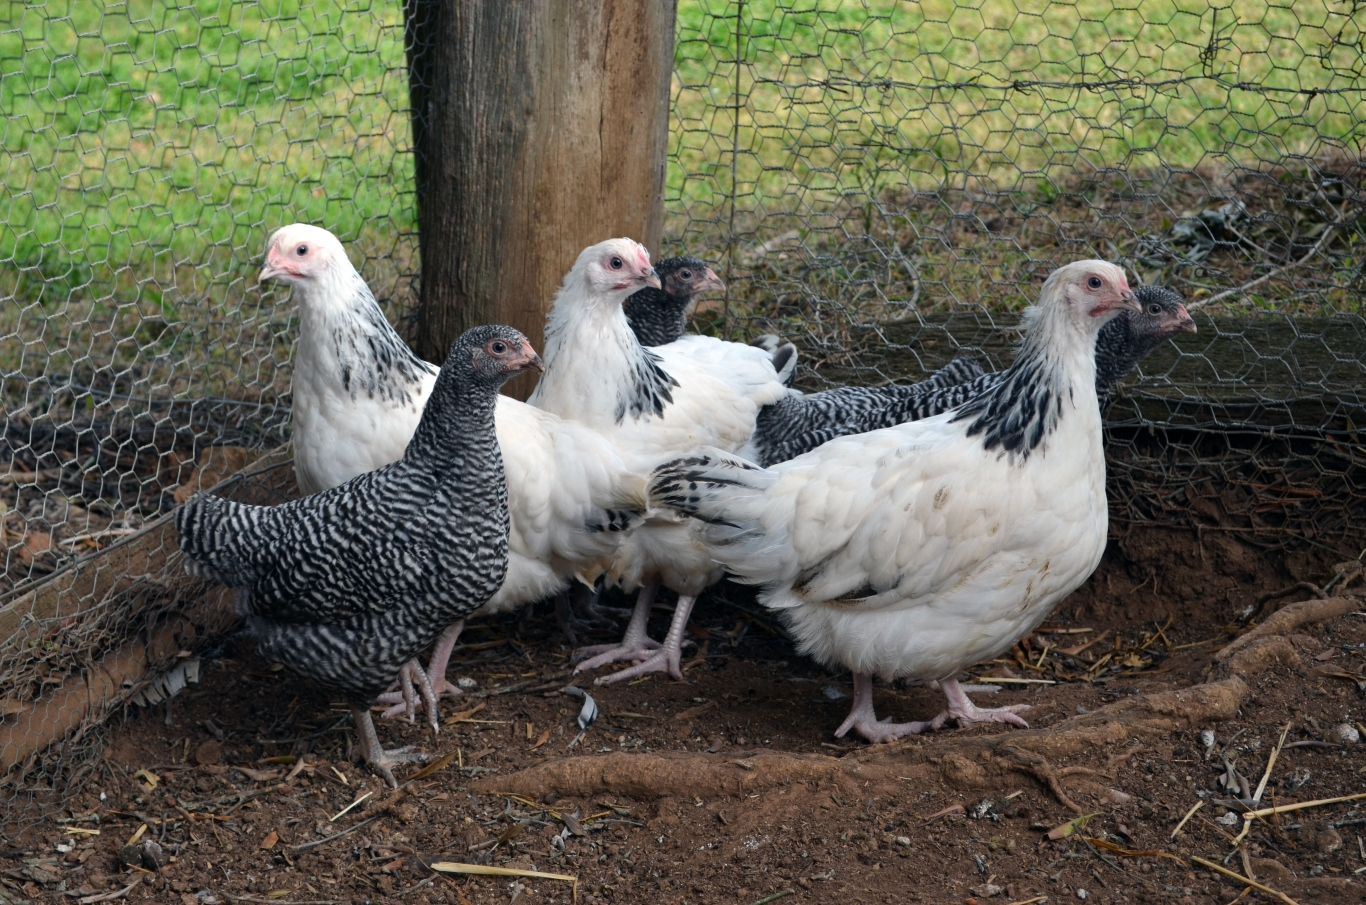 Group of chickens.